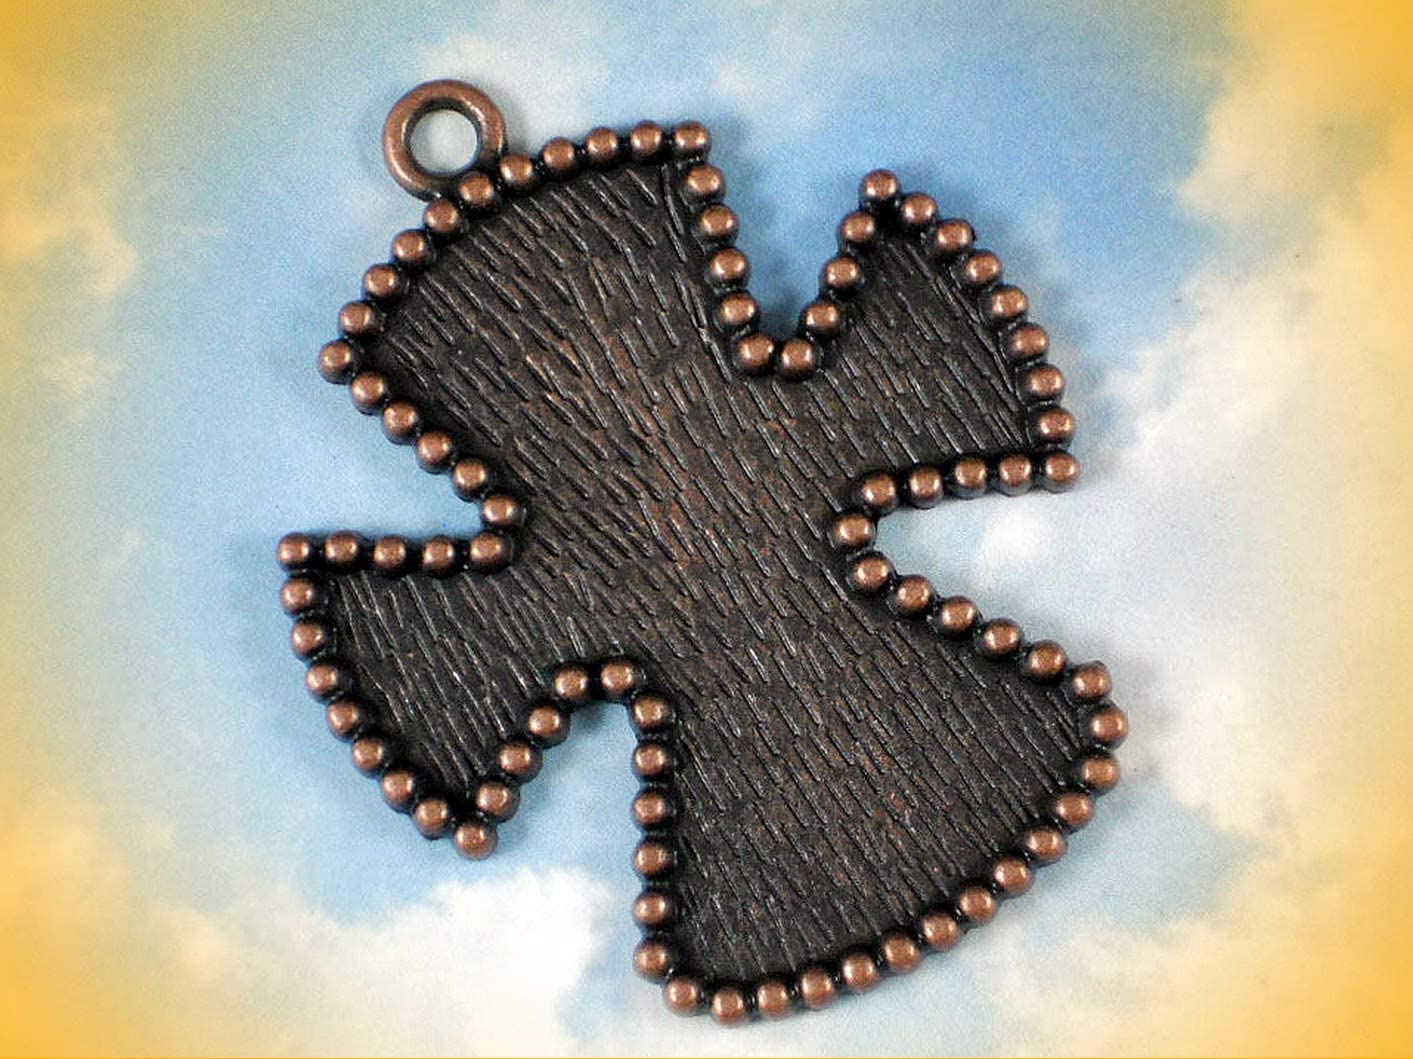 1 Maltese Cross Bezel Large Blank Setting Pendant Copper Tone Embed Beads Adorable Charms and More for Your own Designs by CharmingStuffS